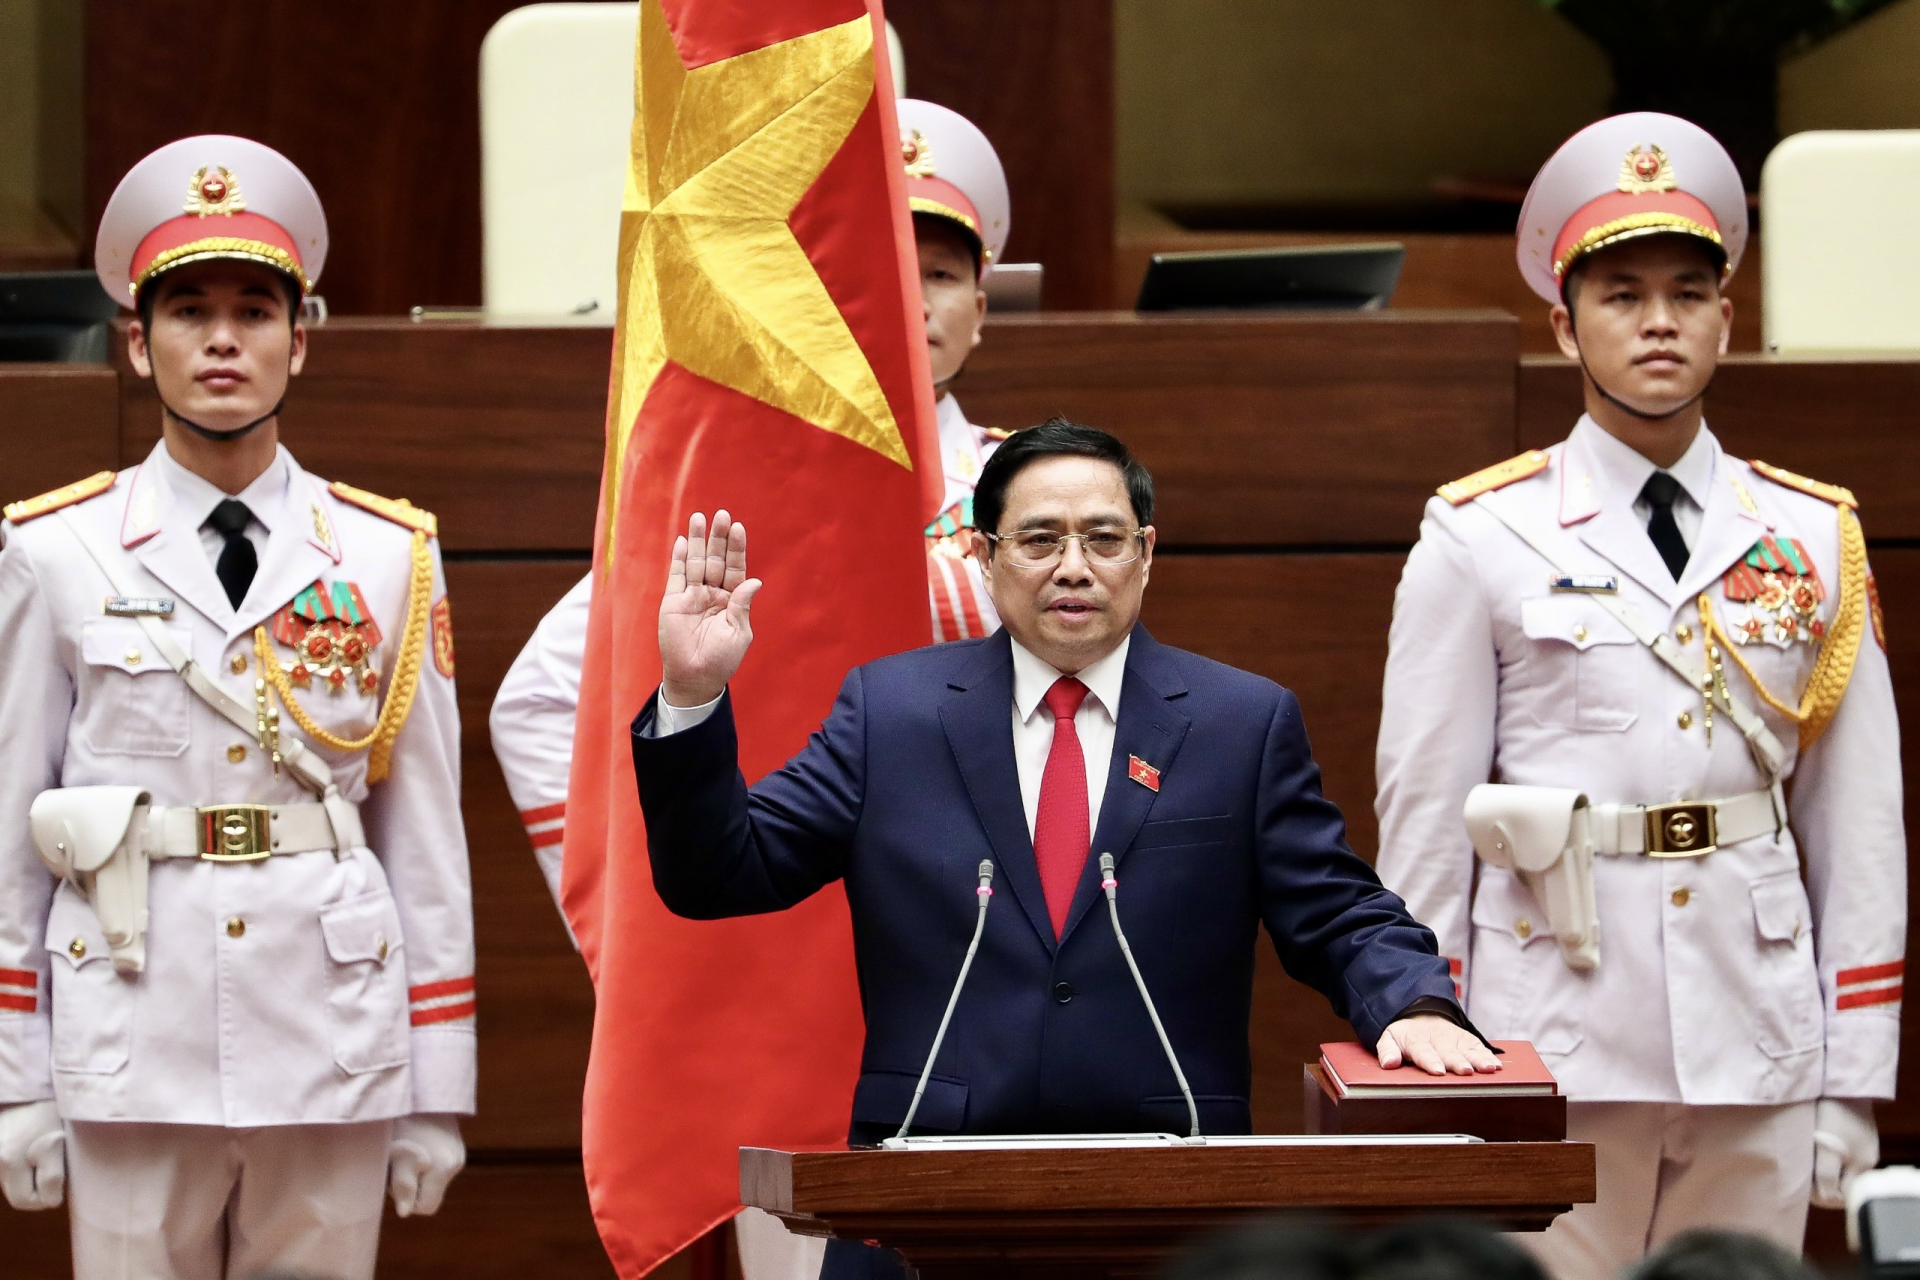 Pham Minh Chinh Sworn in as Prime Minister of Vietnam